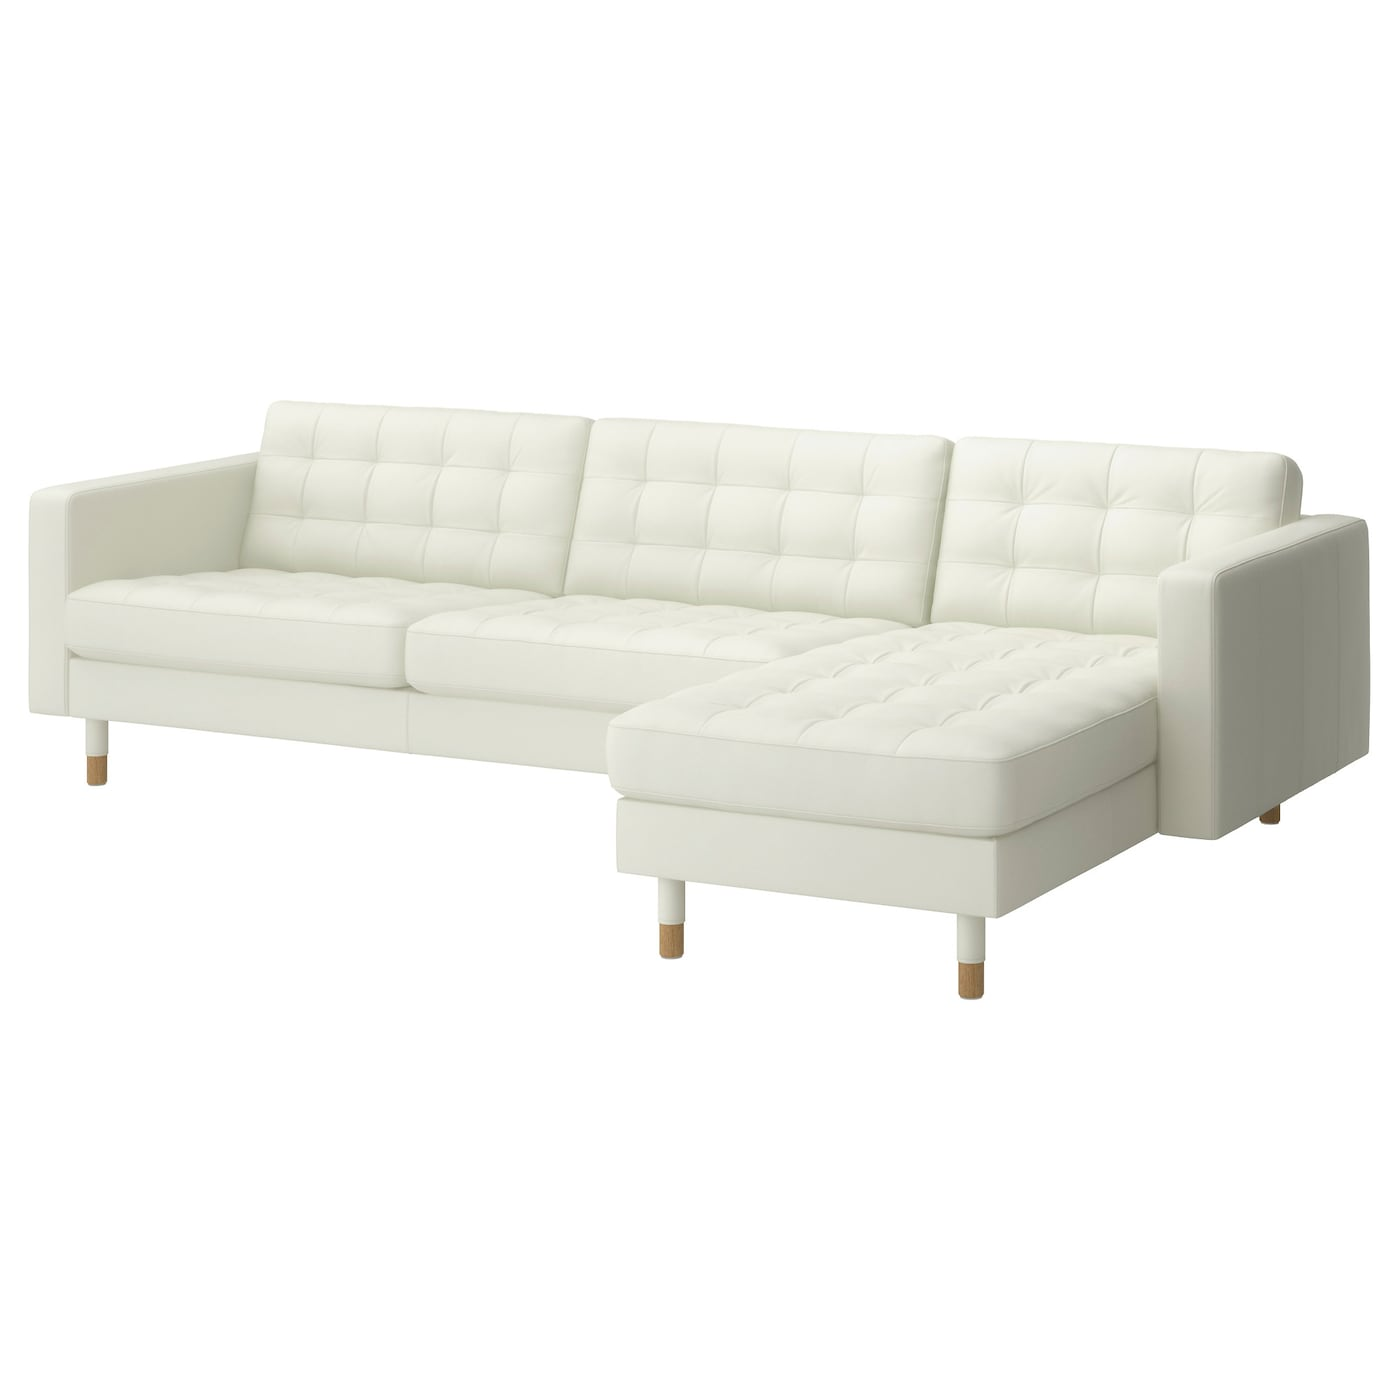 Landskrona three seat sofa and chaise longue grann bomstad for Chaise longue jardin ikea